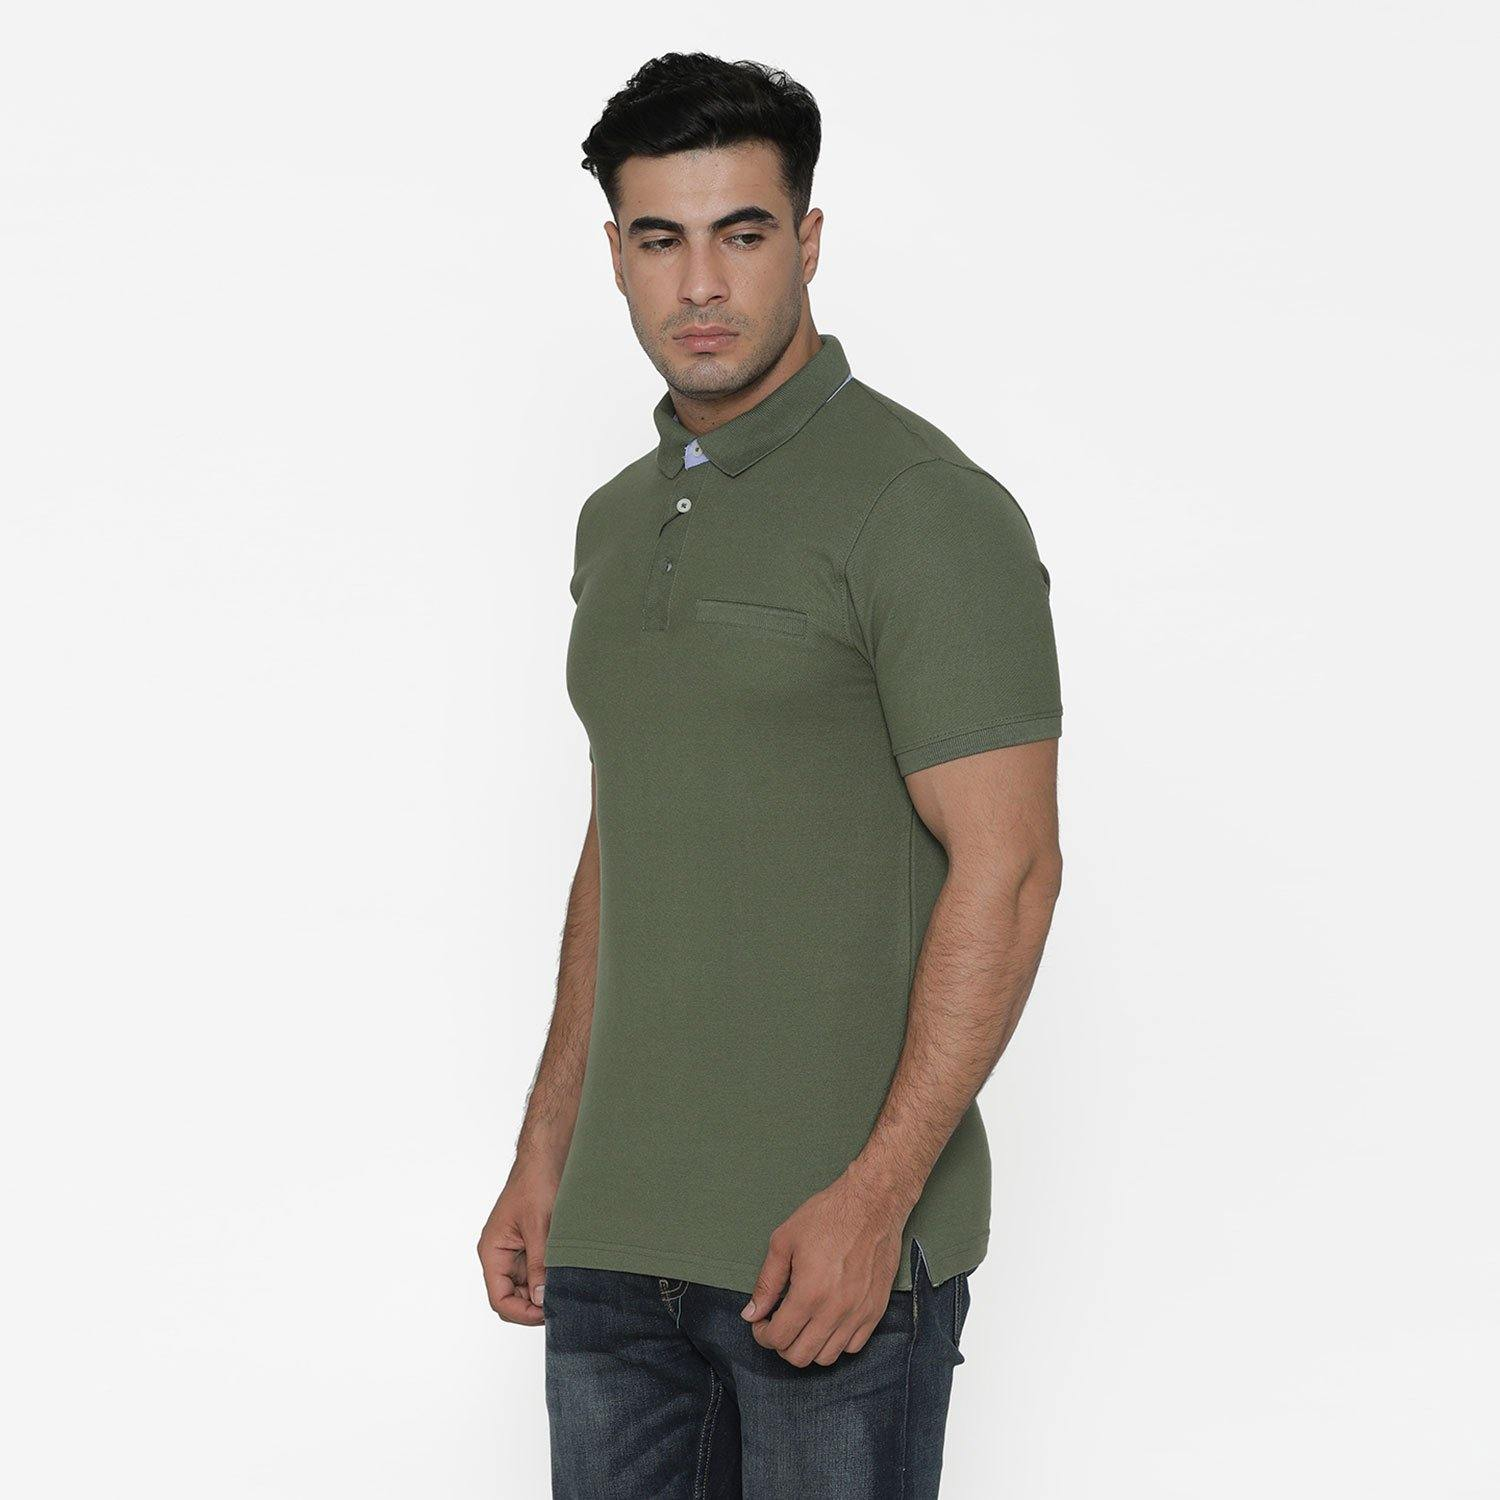 Men's Stylish Polo - Neck T - Shirt For Summer - Olivine